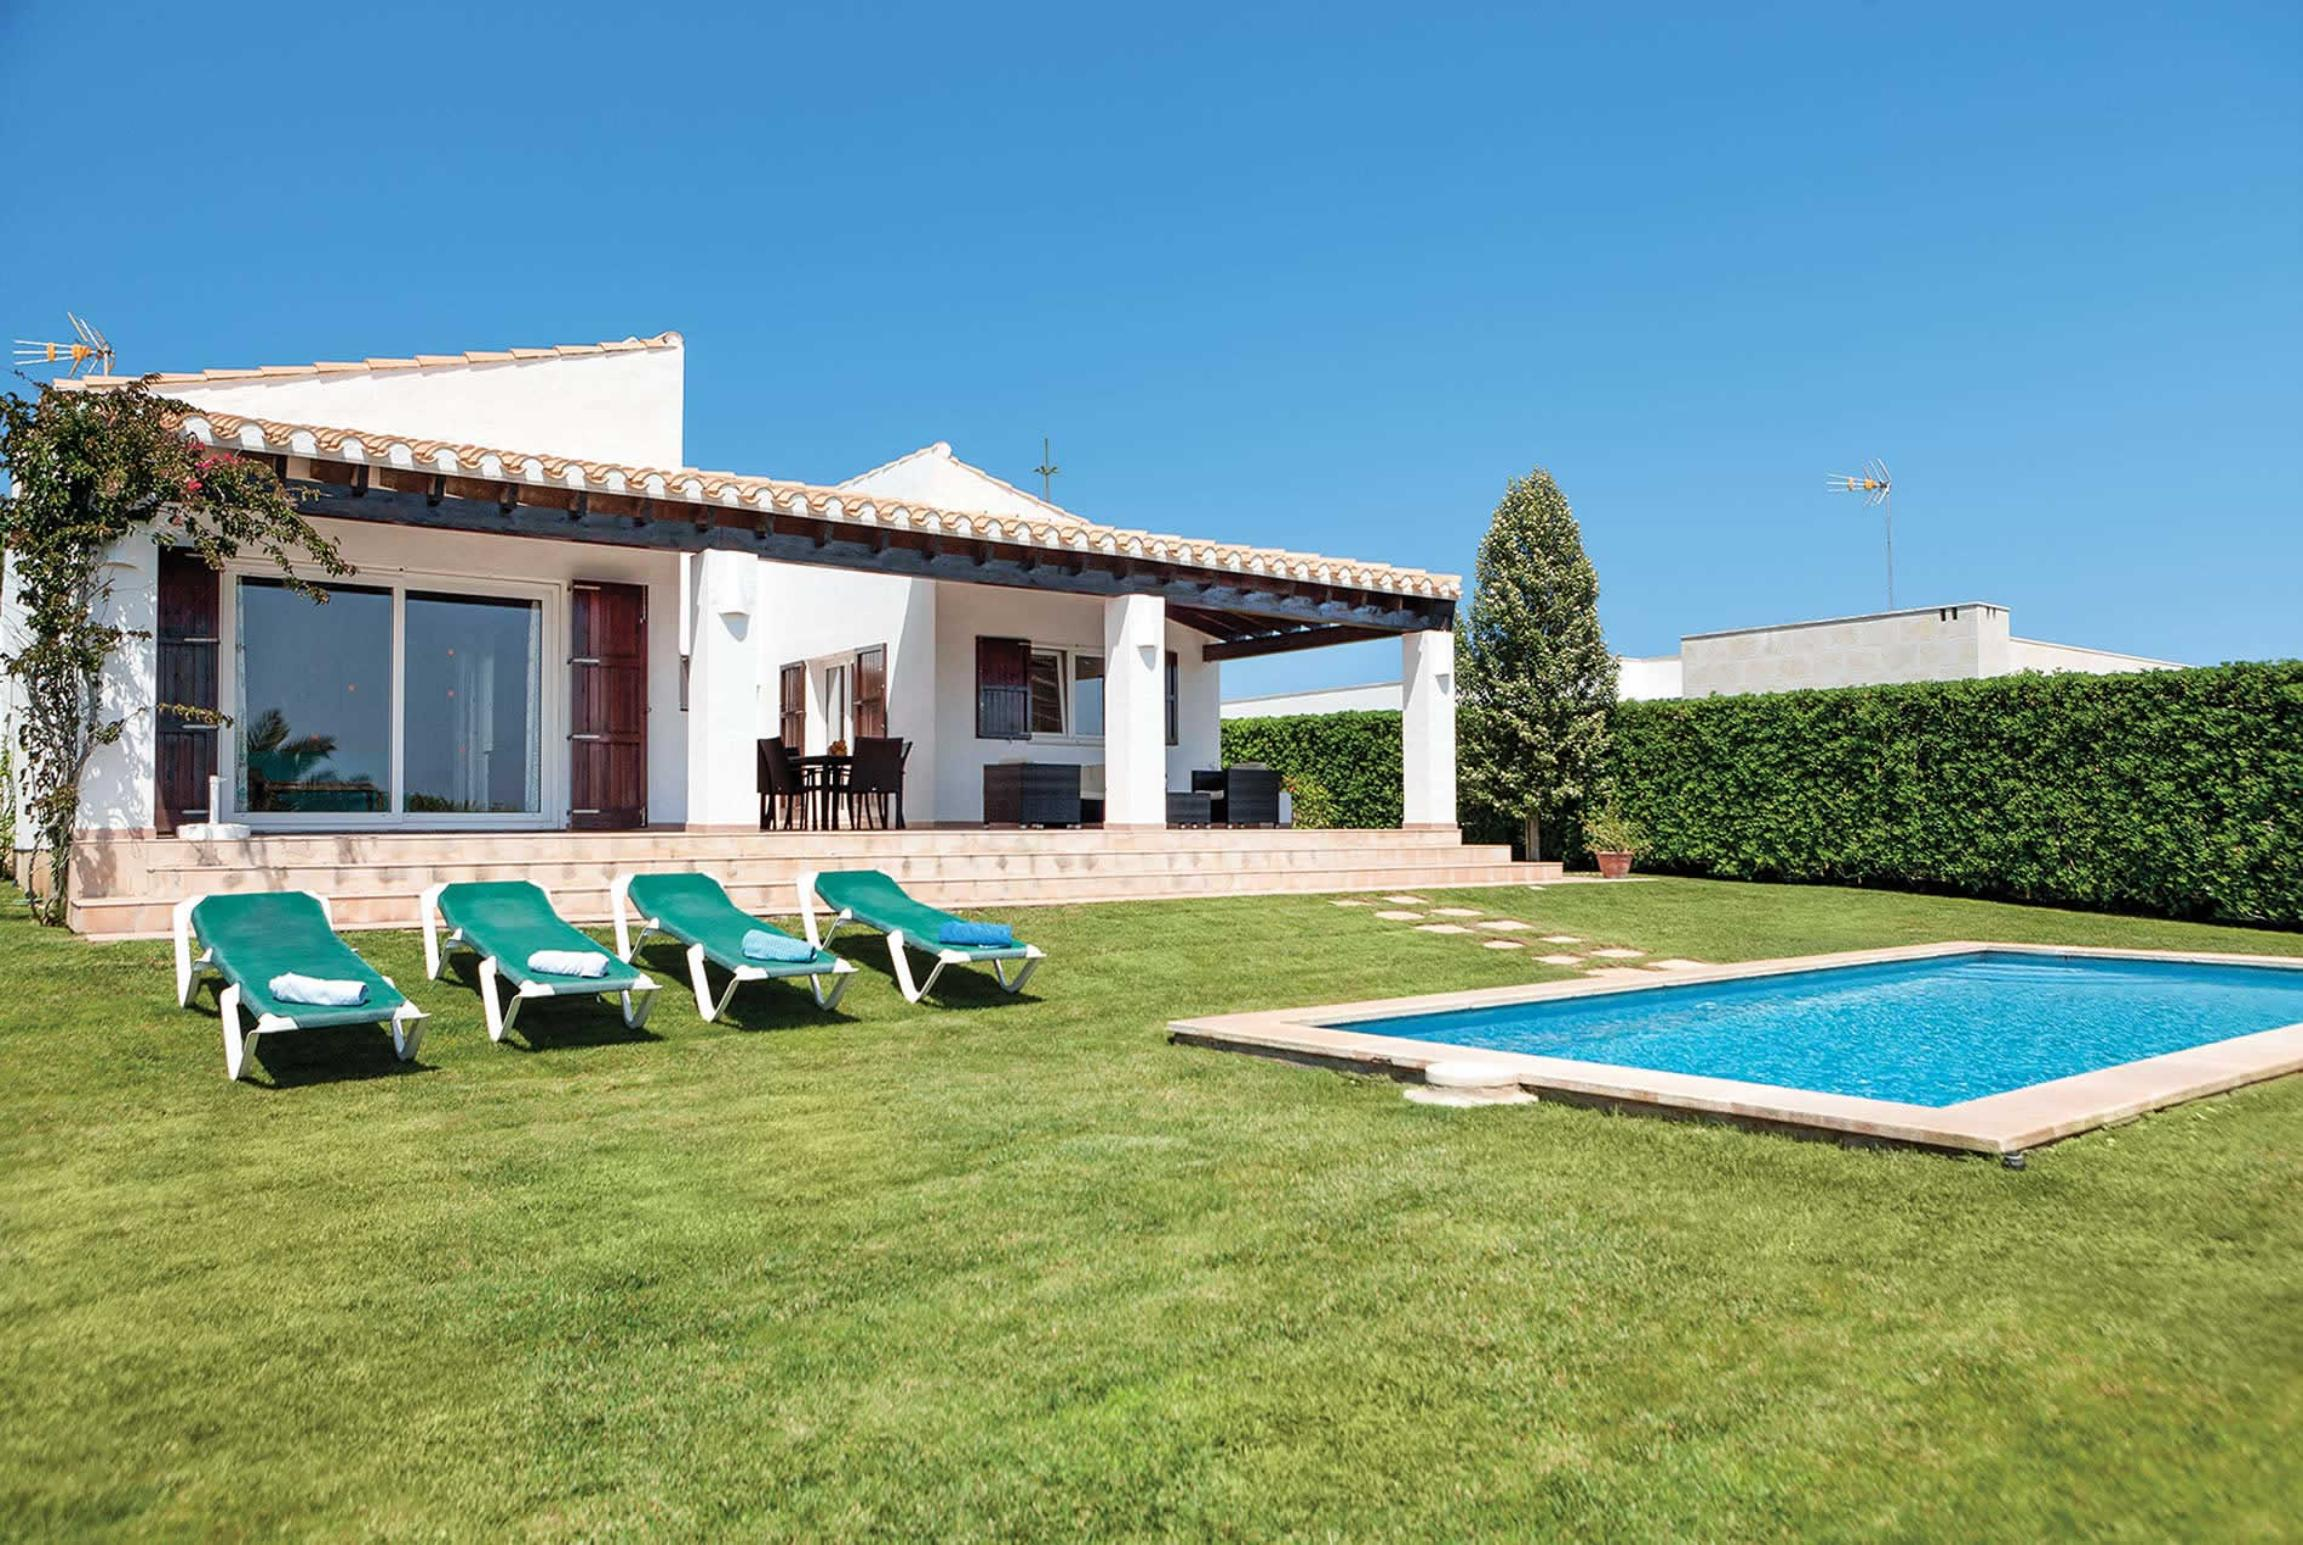 Read more about Matisse villa